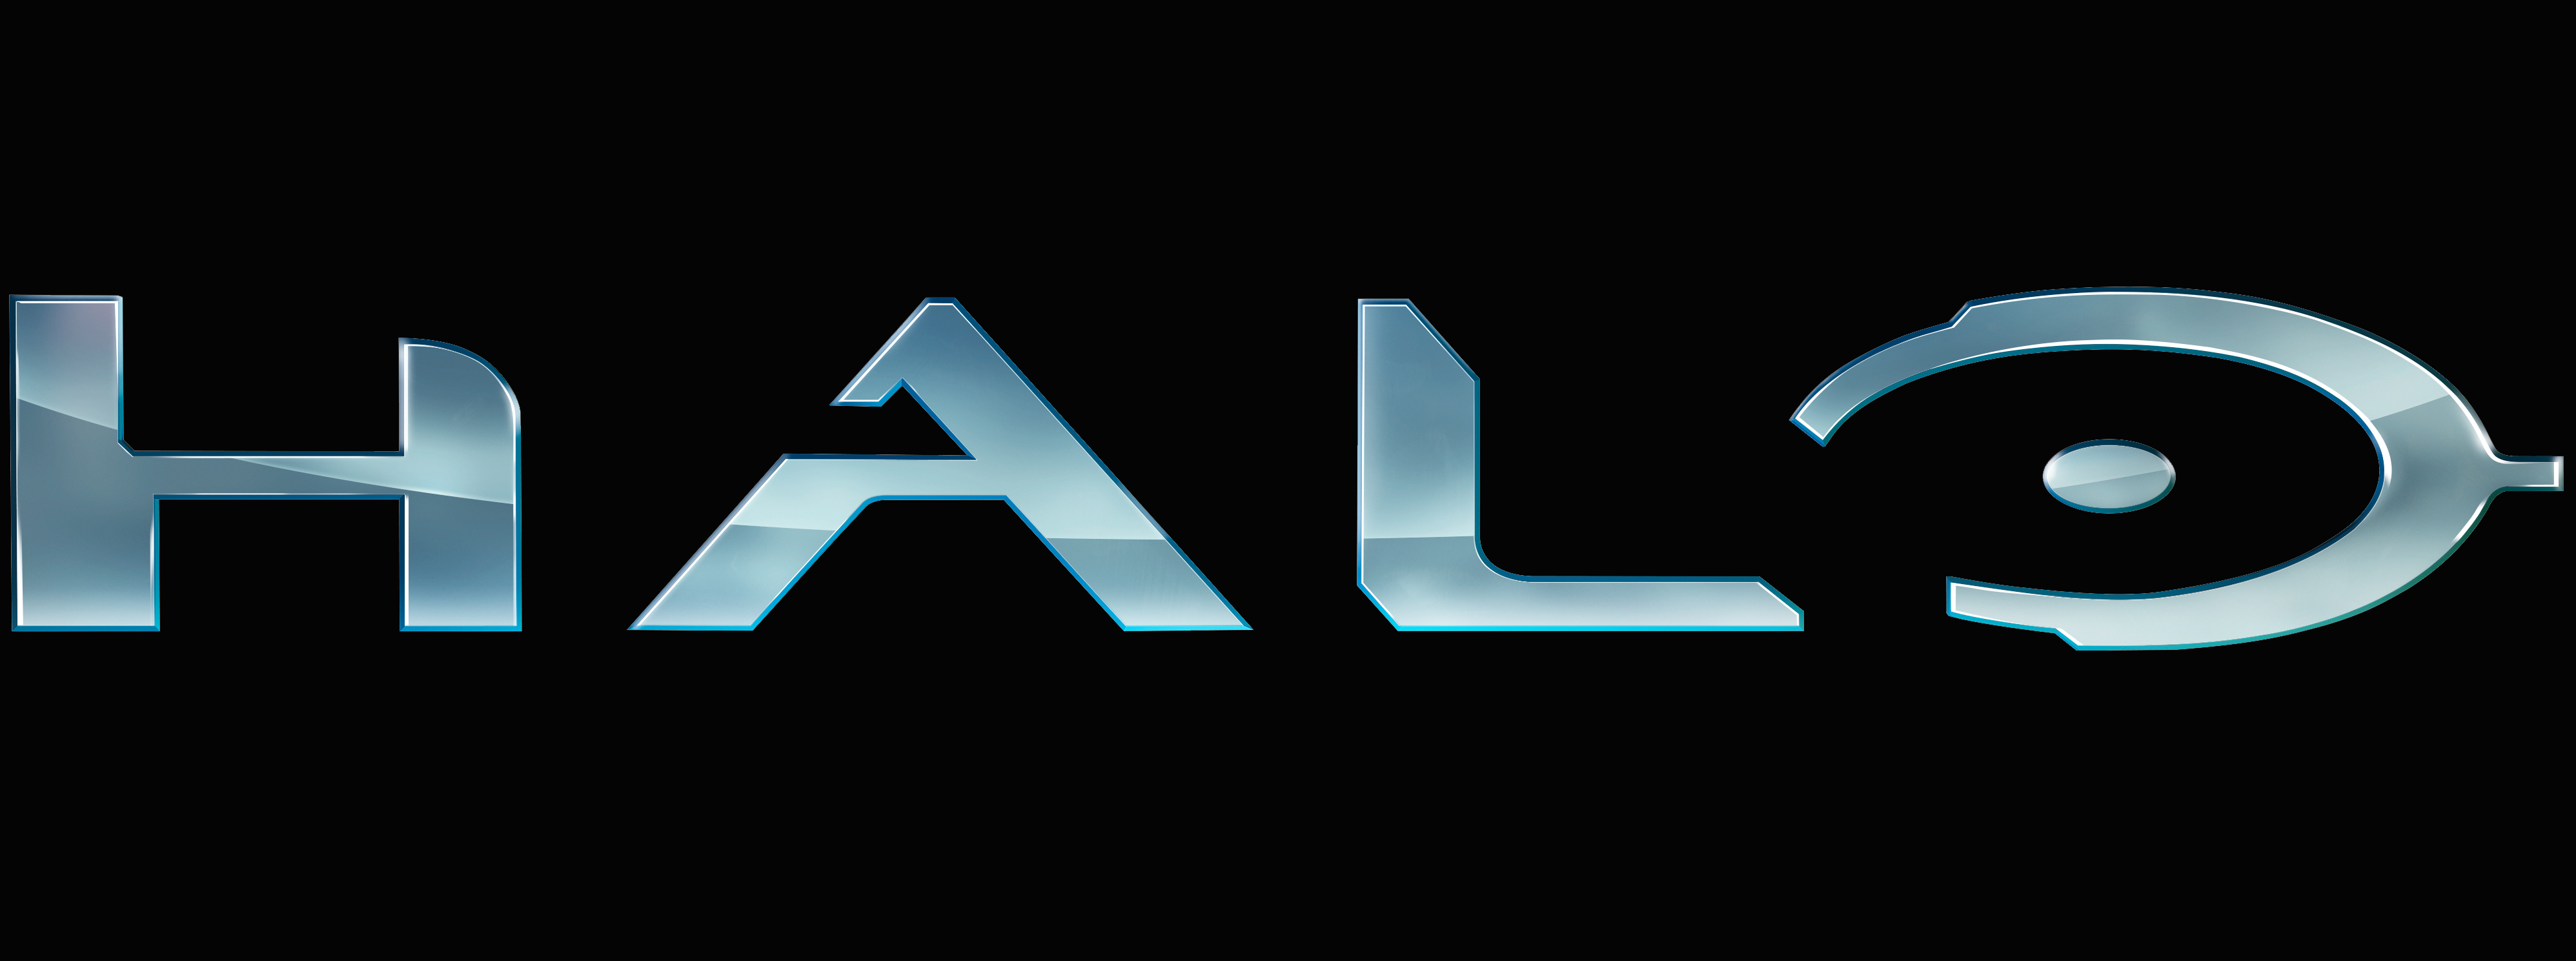 halo-logo-large